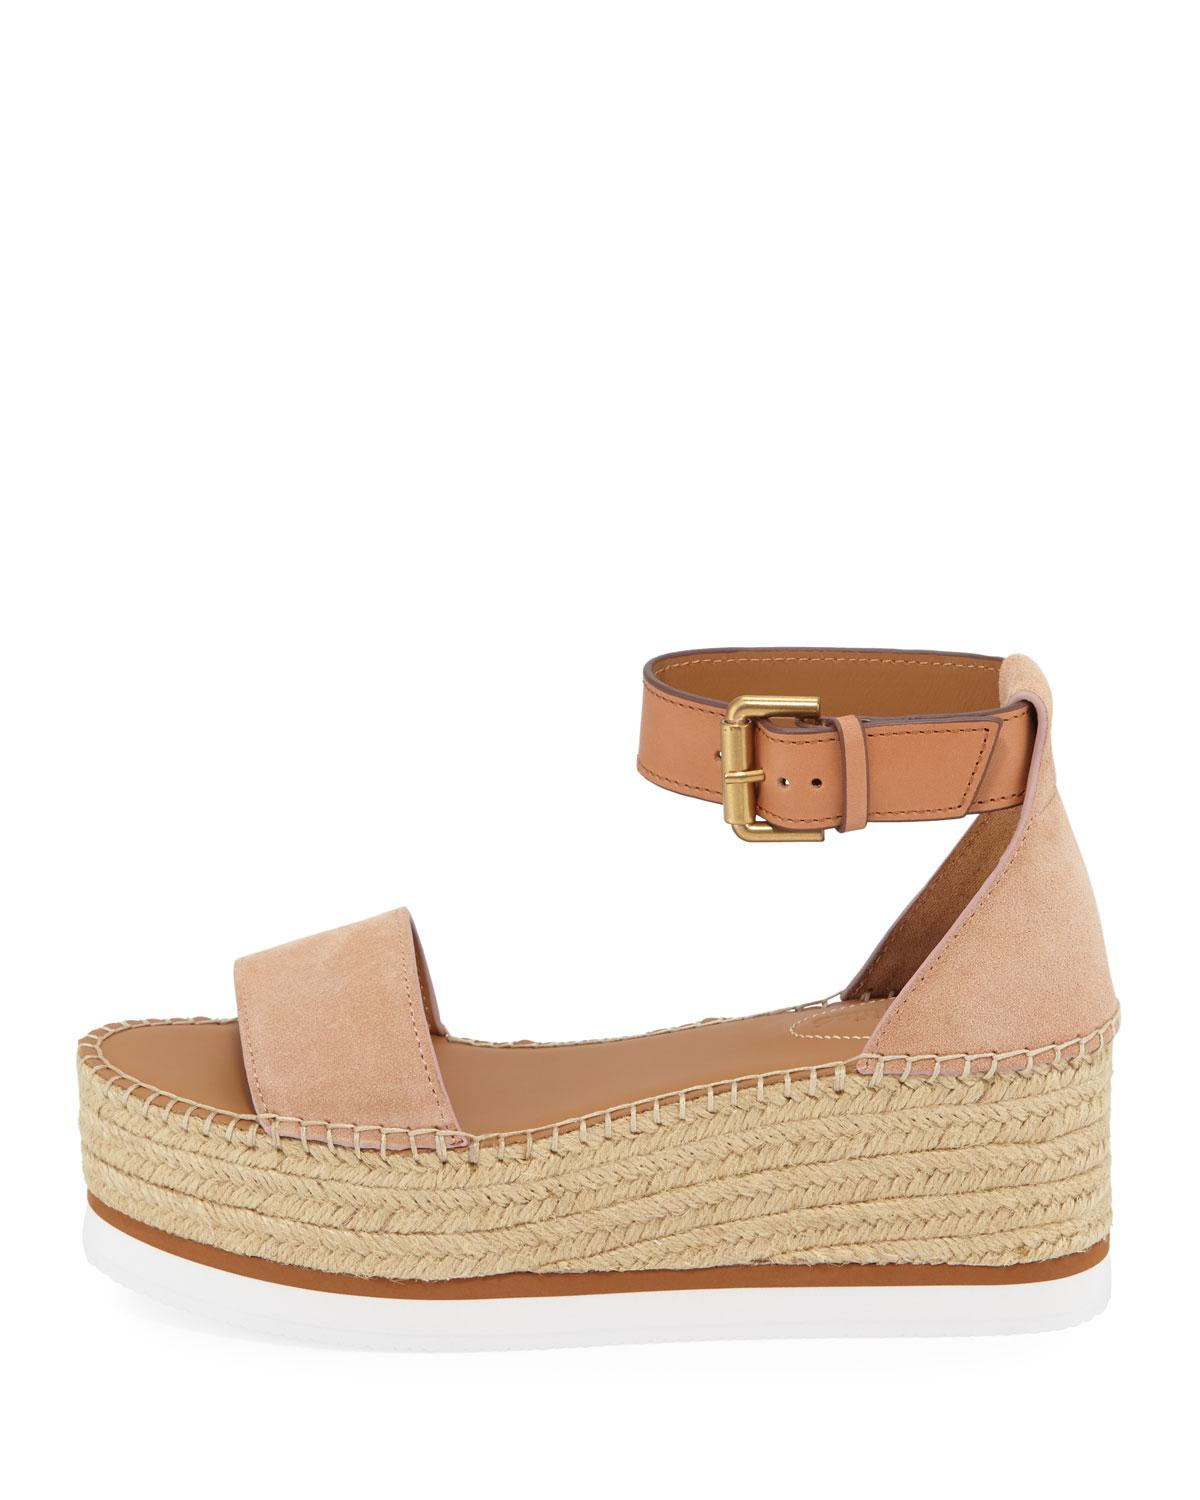 363a0d04d Lyst - See By Chloé Sb32201a Women's Espadrilles / Casual Shoes In Pink in  Pink